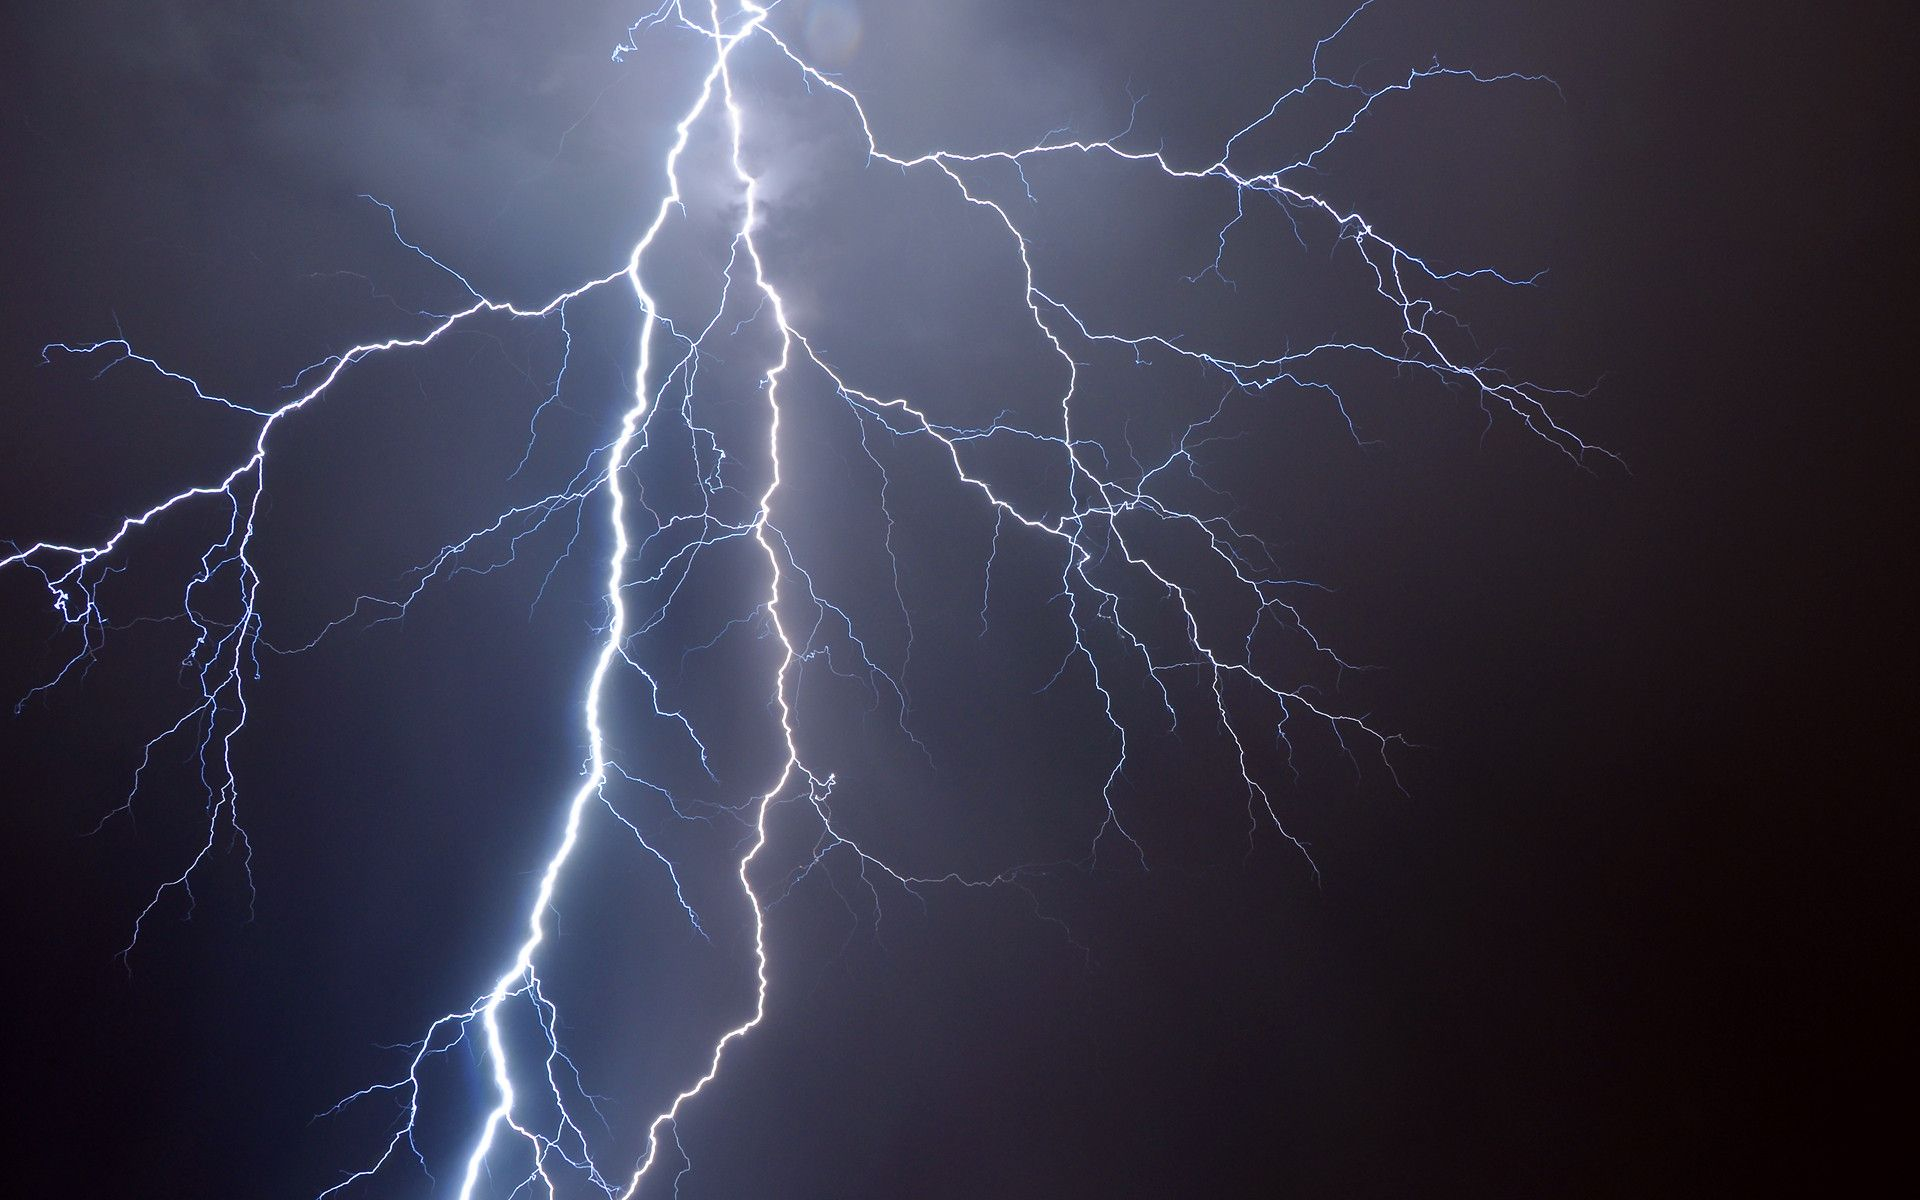 Lightning Background Wallpapers, 46 Lightning Images and